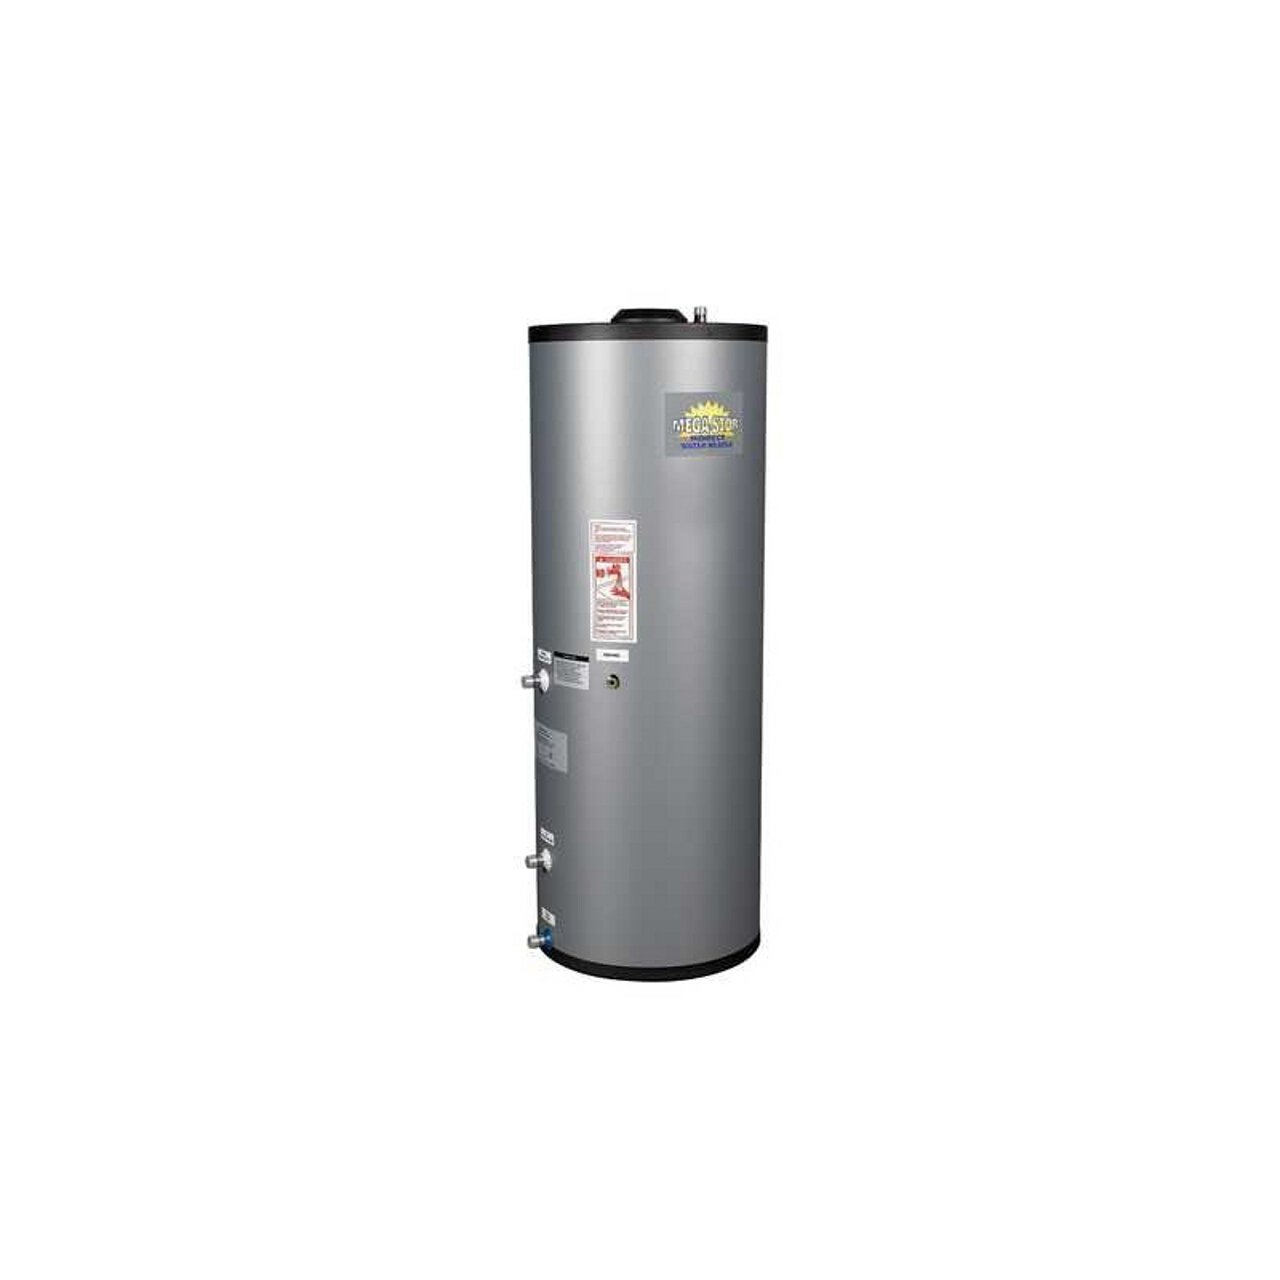 Triangle Smart80 Phase Iii Indirect 70 Gallons Water Heater Amazon Com